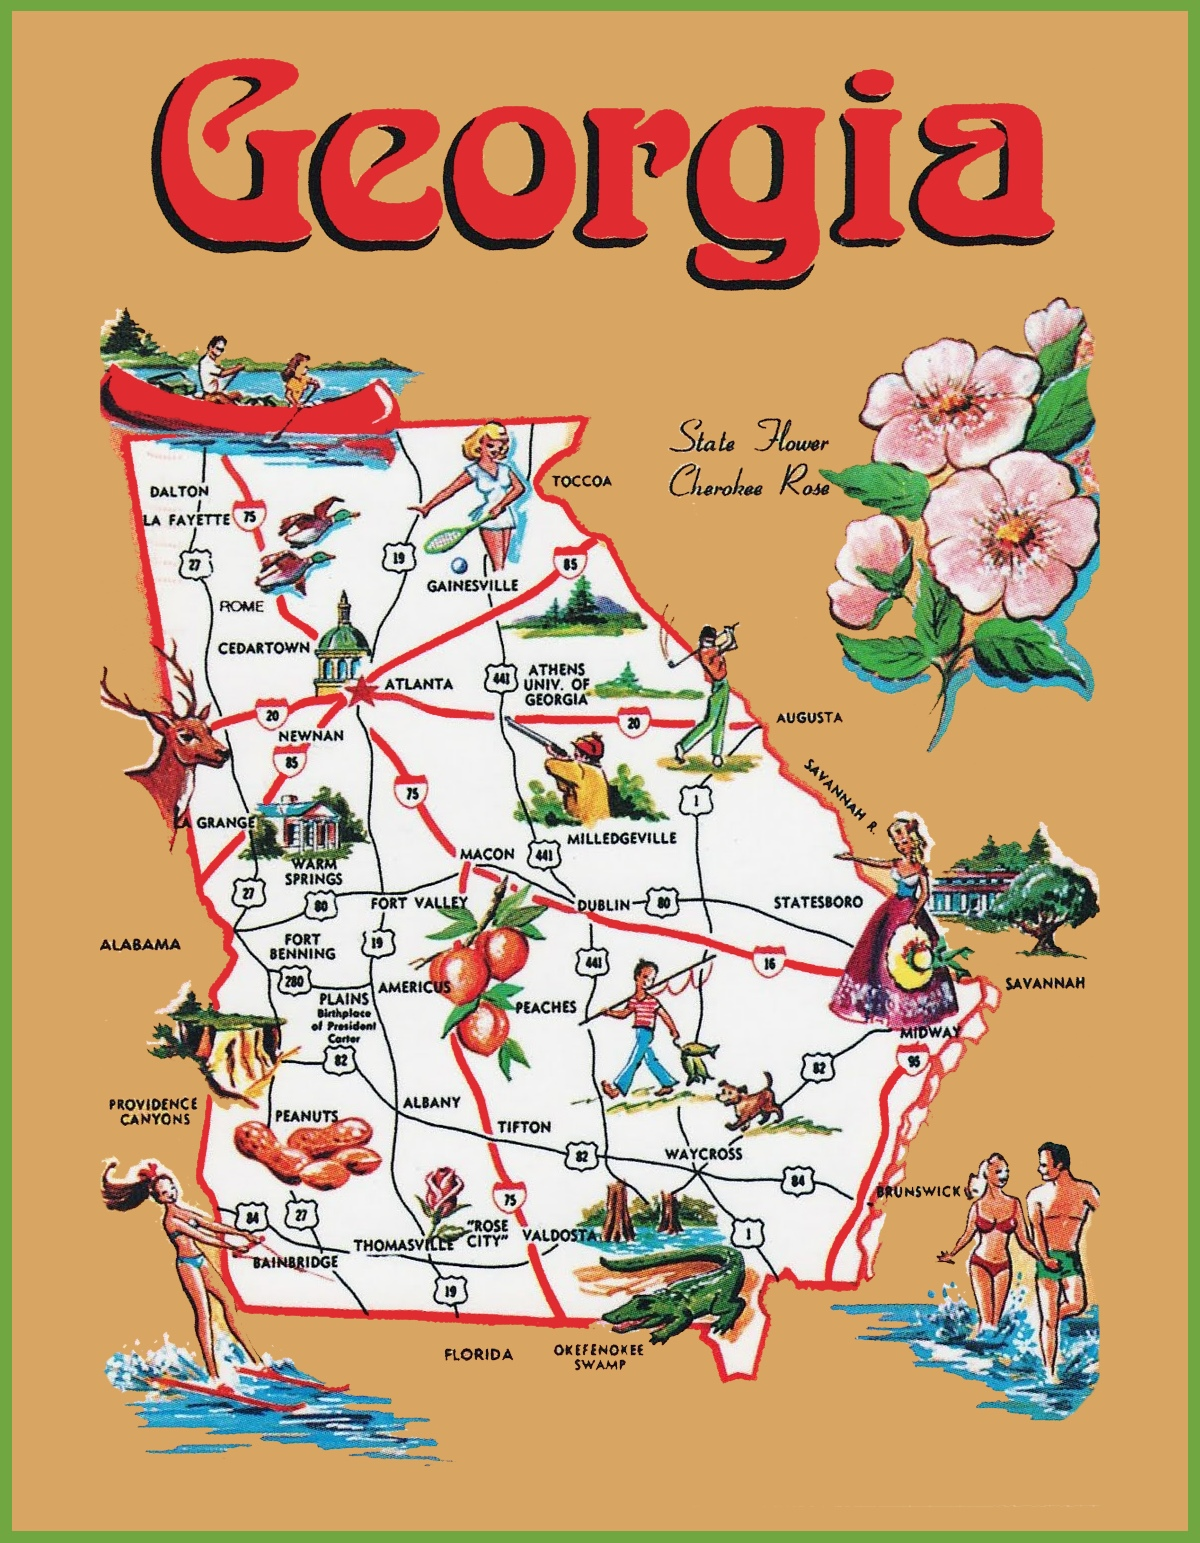 Pictorial Travel Map Of Georgia - Maps of georgia usa